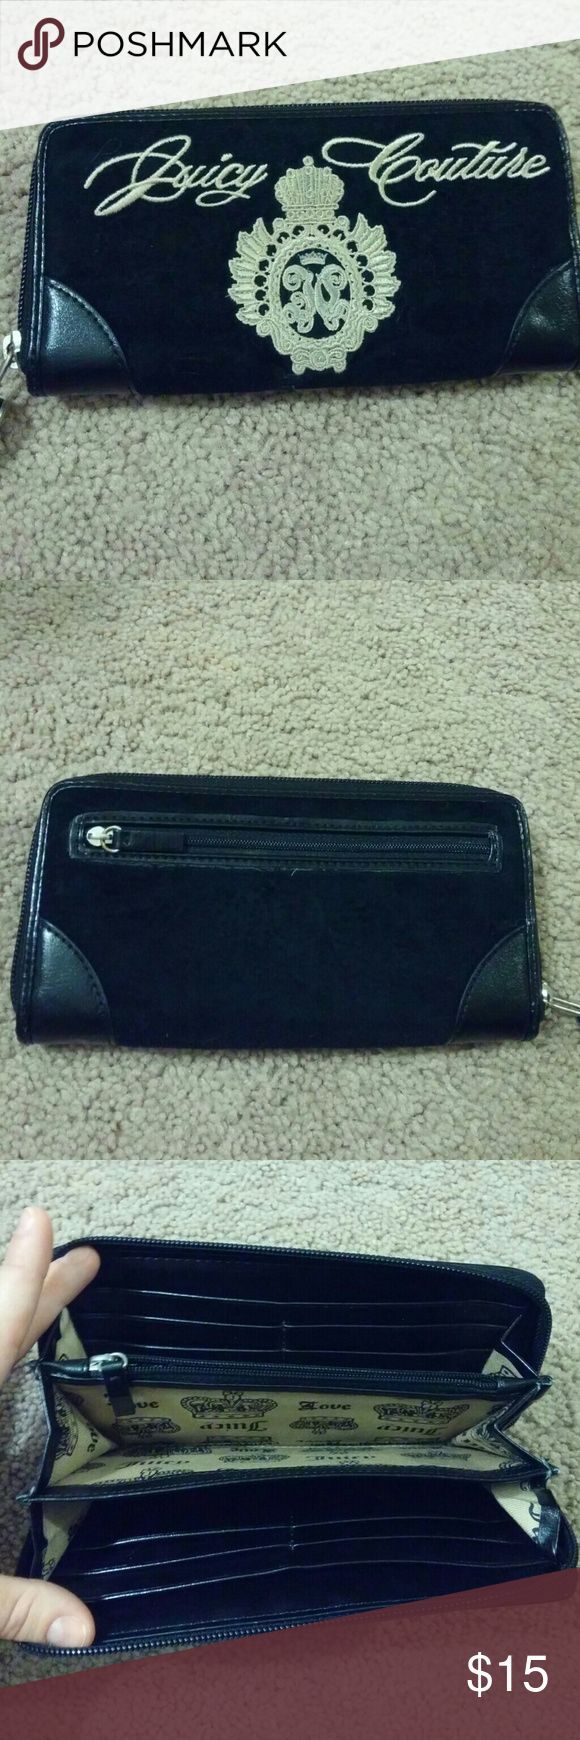 Juicy Couture Wallet Black velour zip around wallet. Multiple card slots and pockets within. Purchased from Nordstroms. Used a handful of times. Juicy Couture Accessories